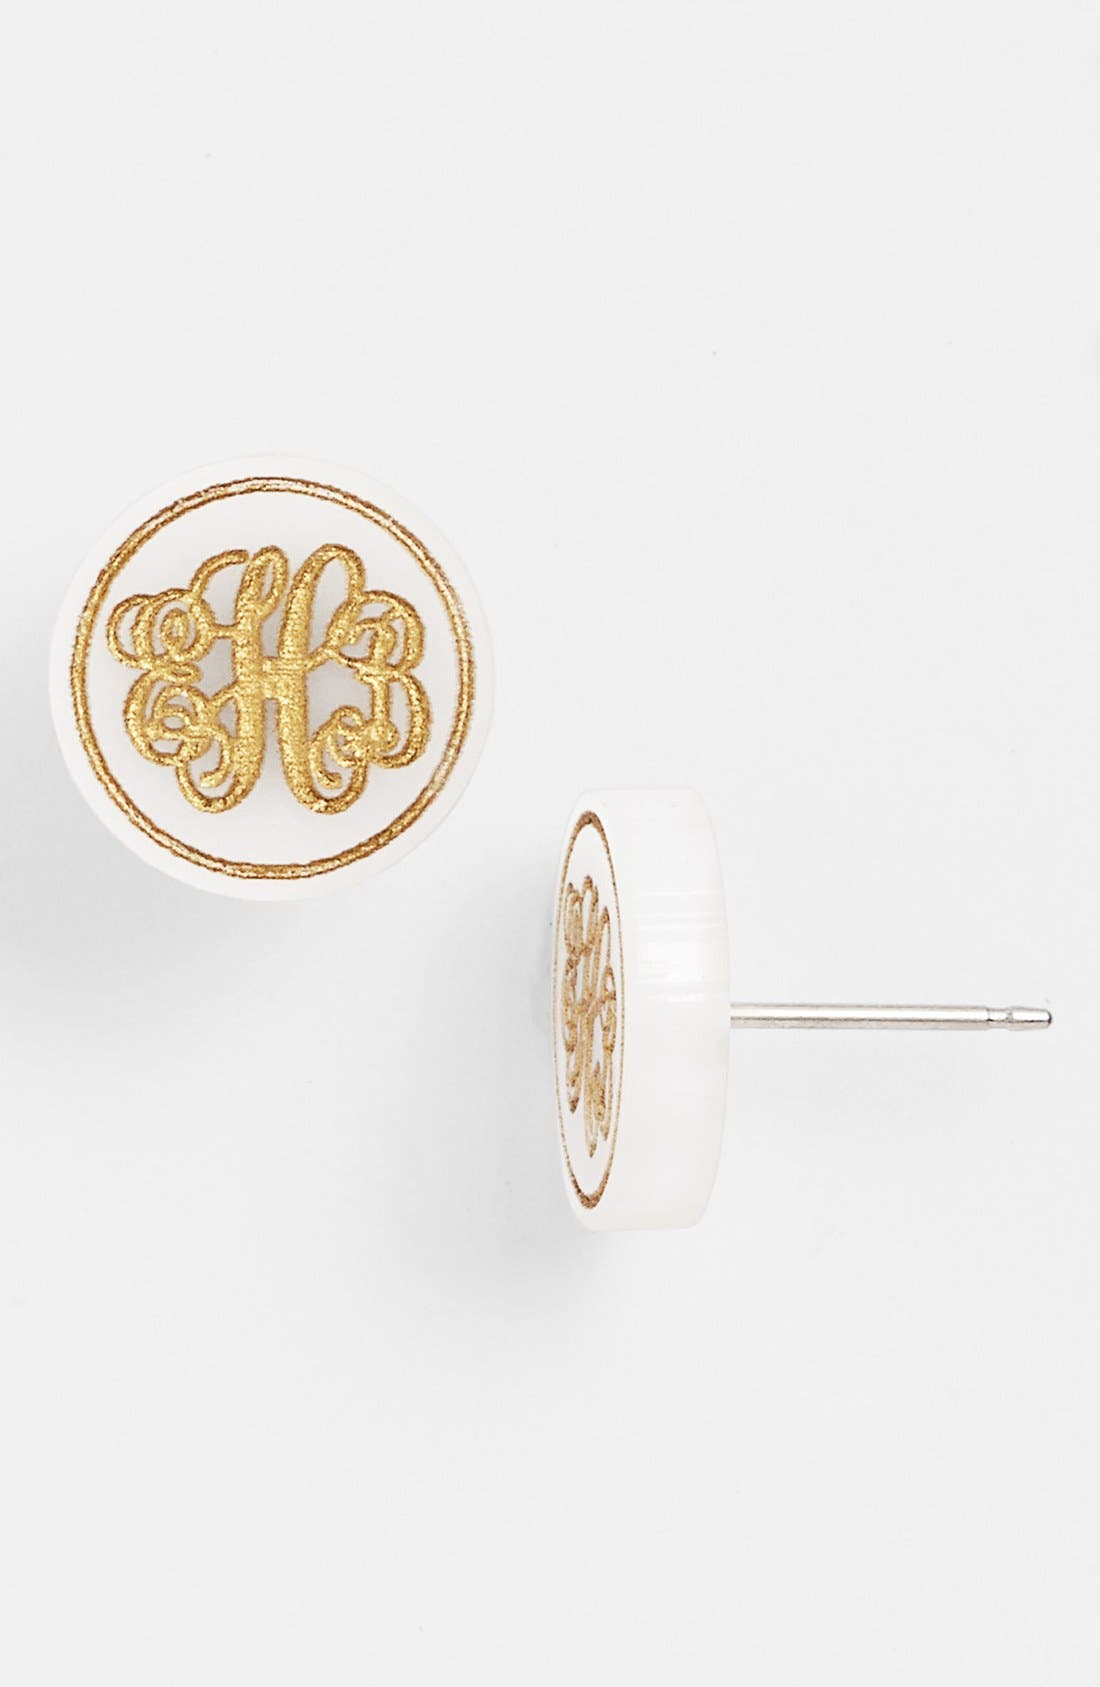 Alternate Image 1 Selected - Moon and Lola 'Chelsea' Small Personalized Monogram Stud Earrings (Nordstrom Exclusive)